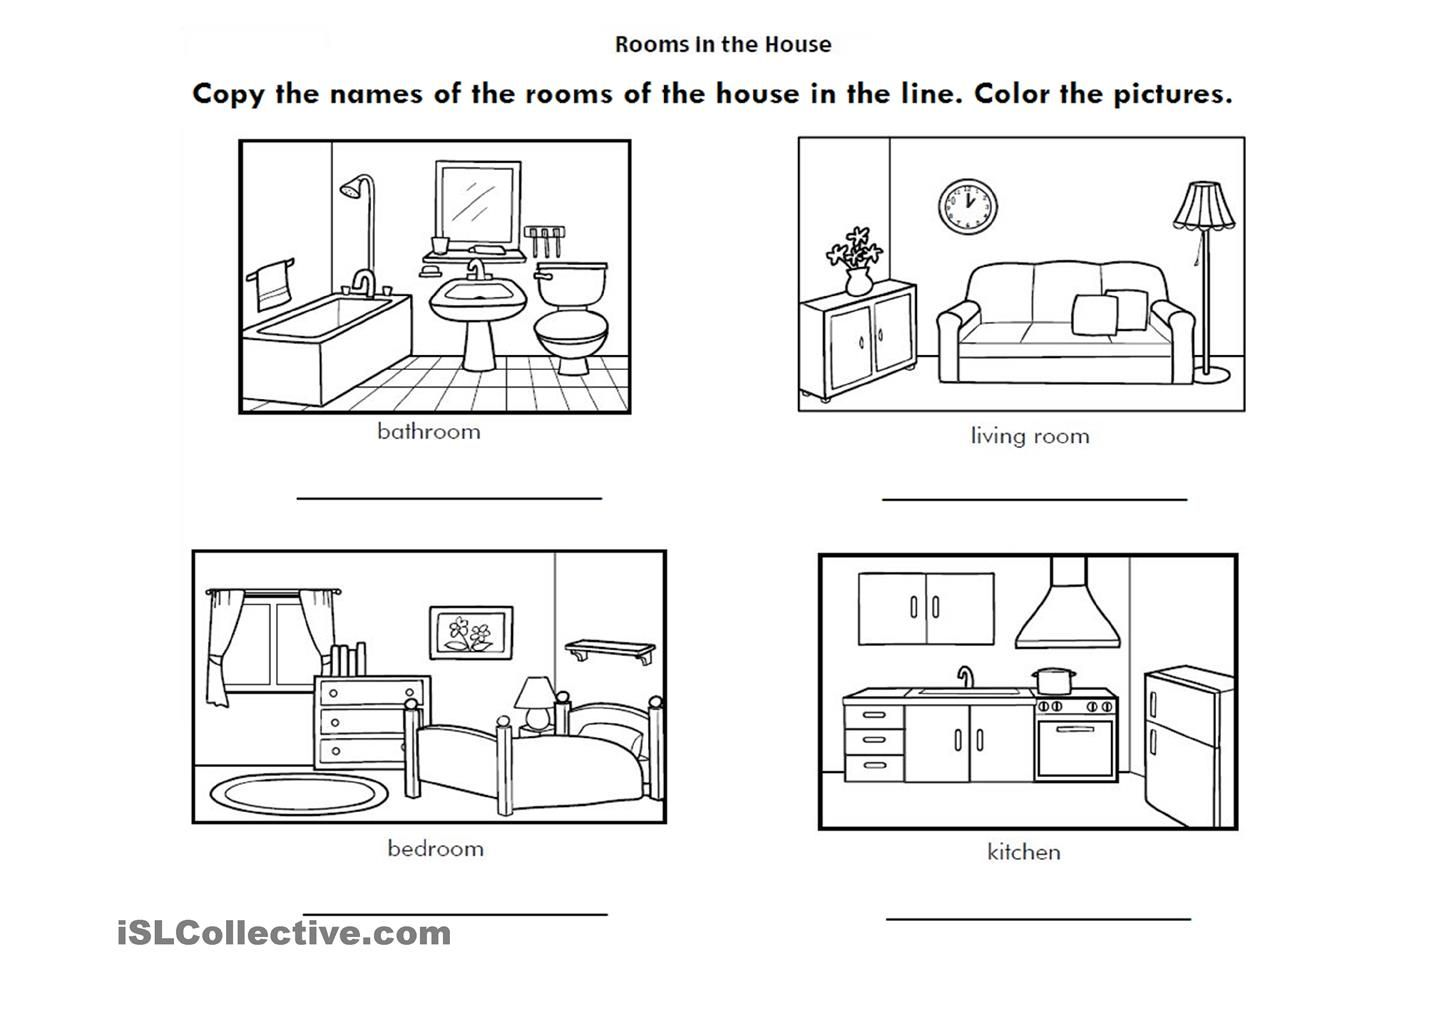 Printable Worksheets Home : Rooms of the house parts a and worksheetts